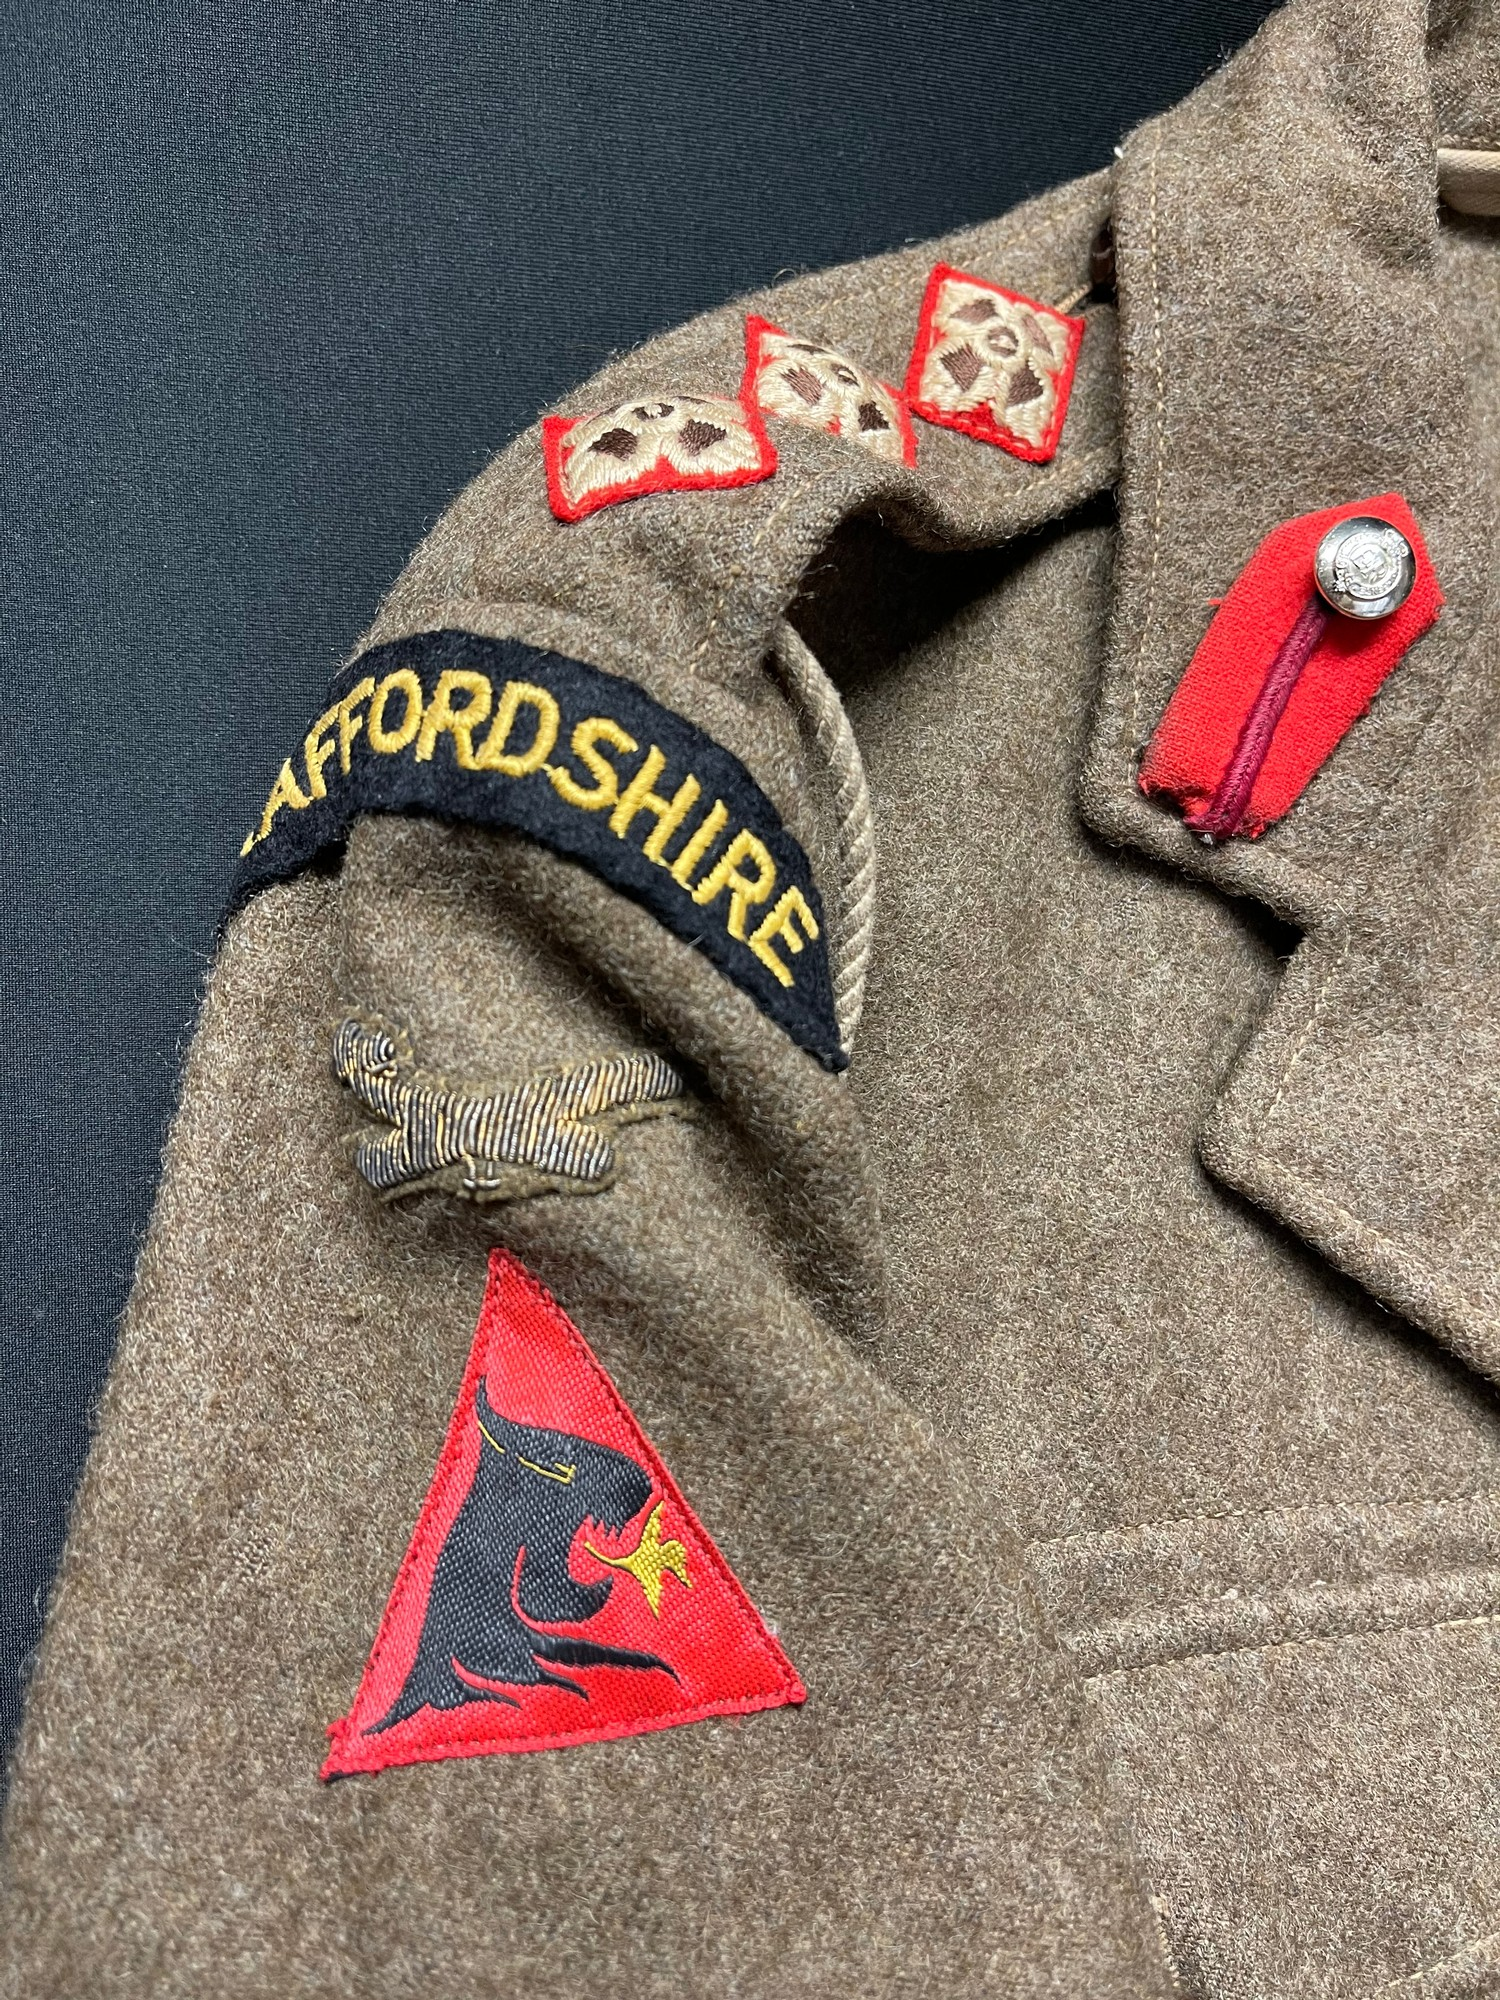 British Army Staffordshire Regiment 1949 Pattern Captains Battledress Blouse. Complete with all - Image 2 of 8